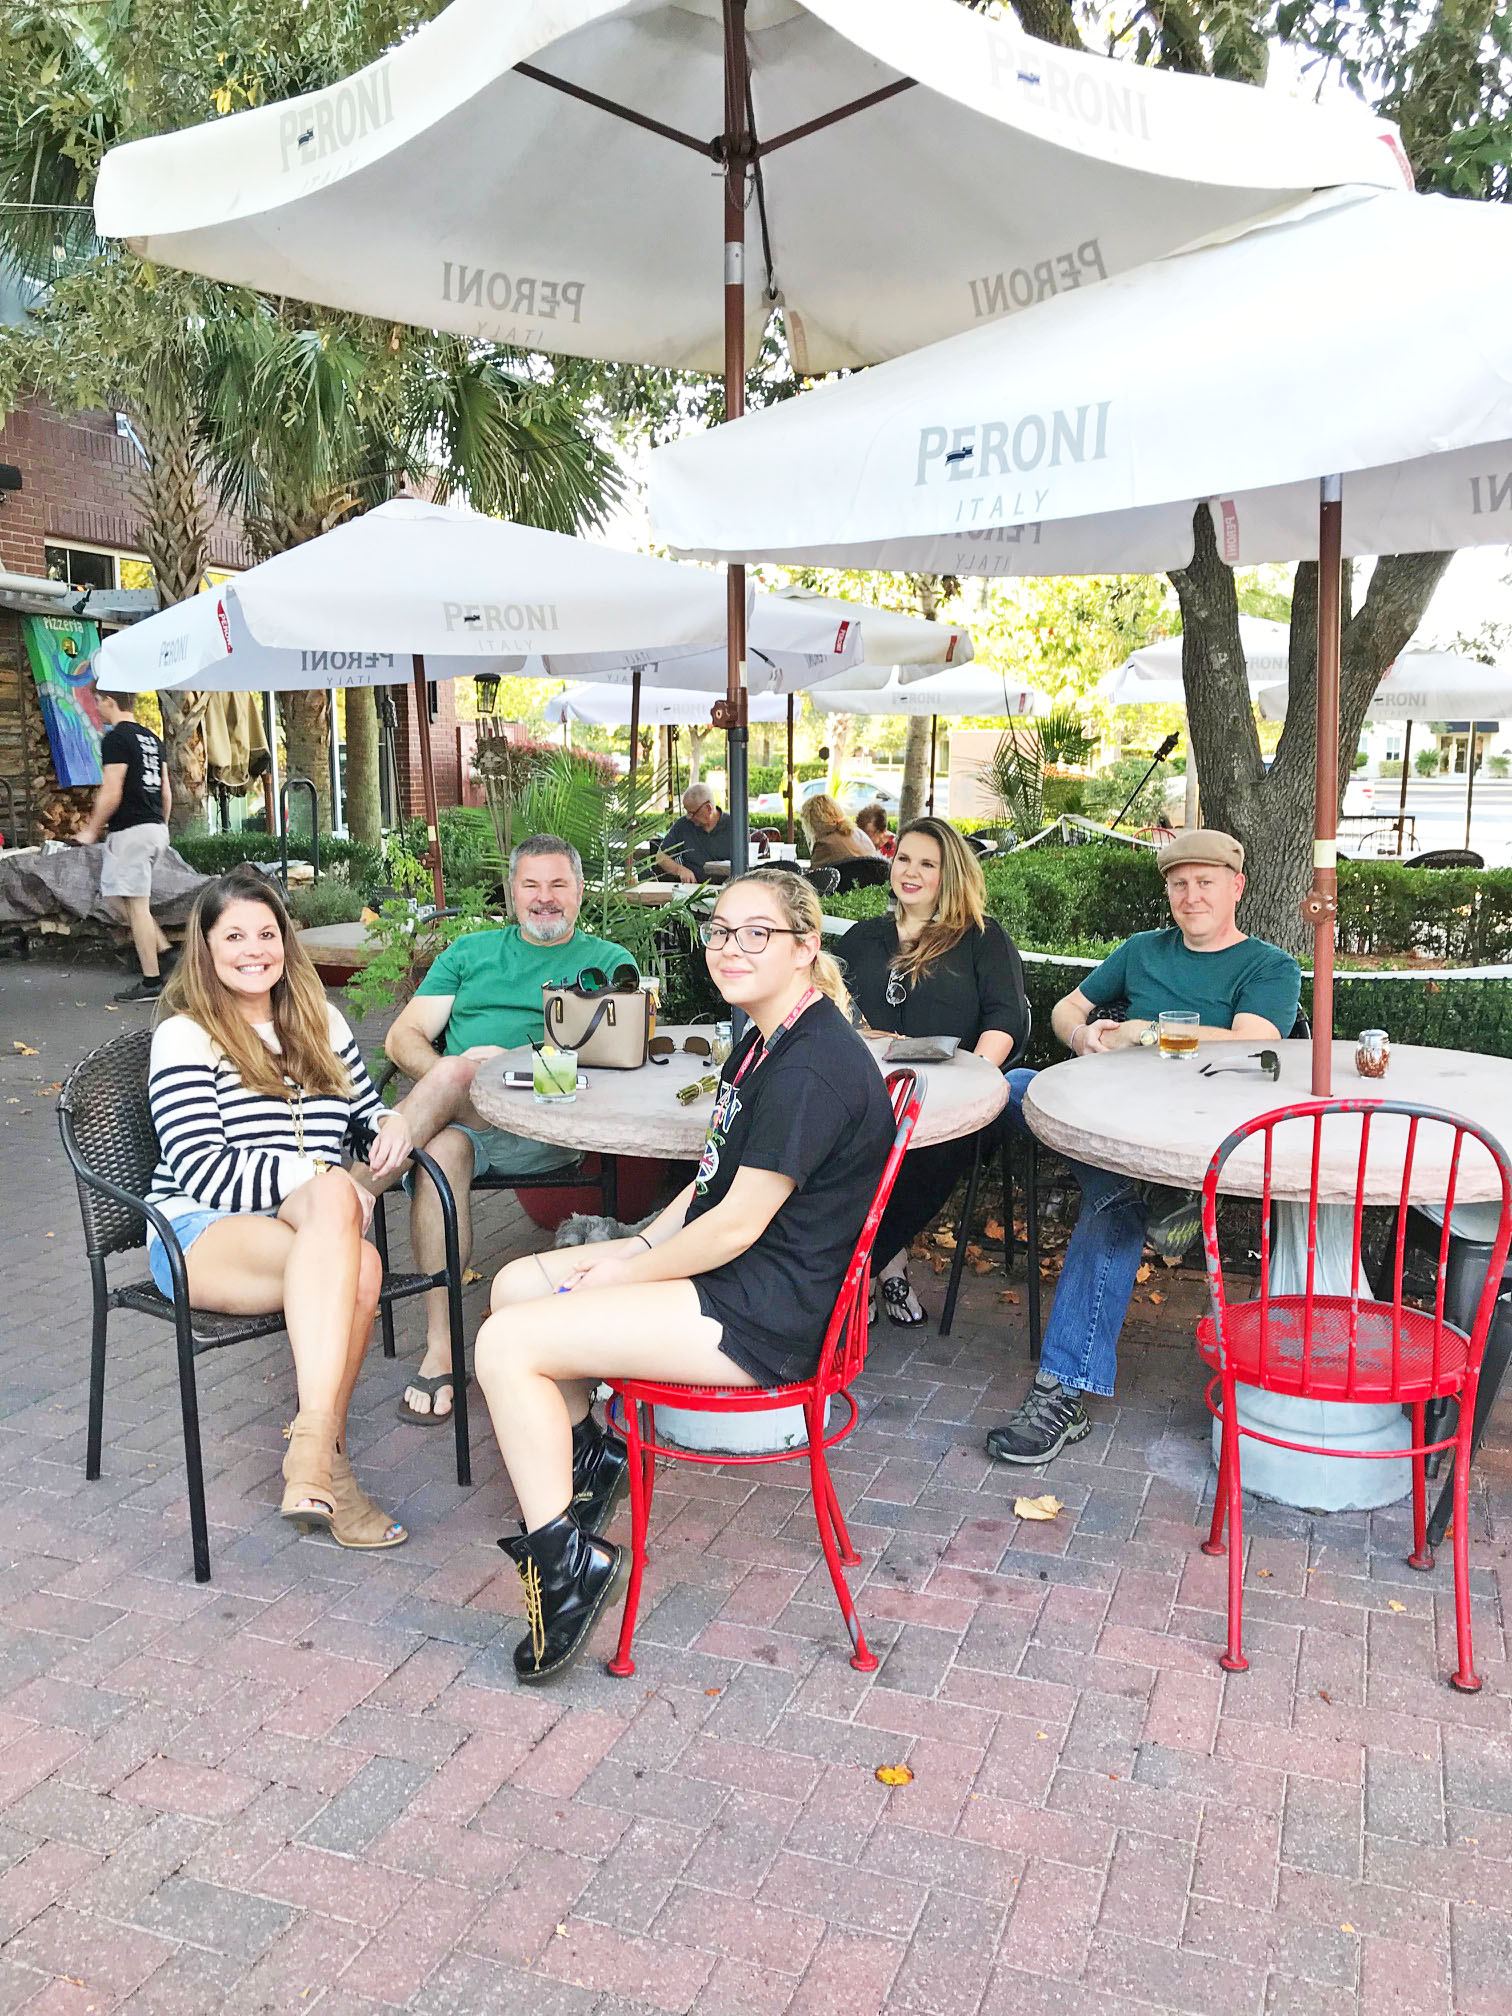 Sara Hannapel, Ted Hannapel, Lauren Messina, Jeremy LaRowe, and Annelise Teves take in the celebratory atmosphere while dining outside at Vespa.